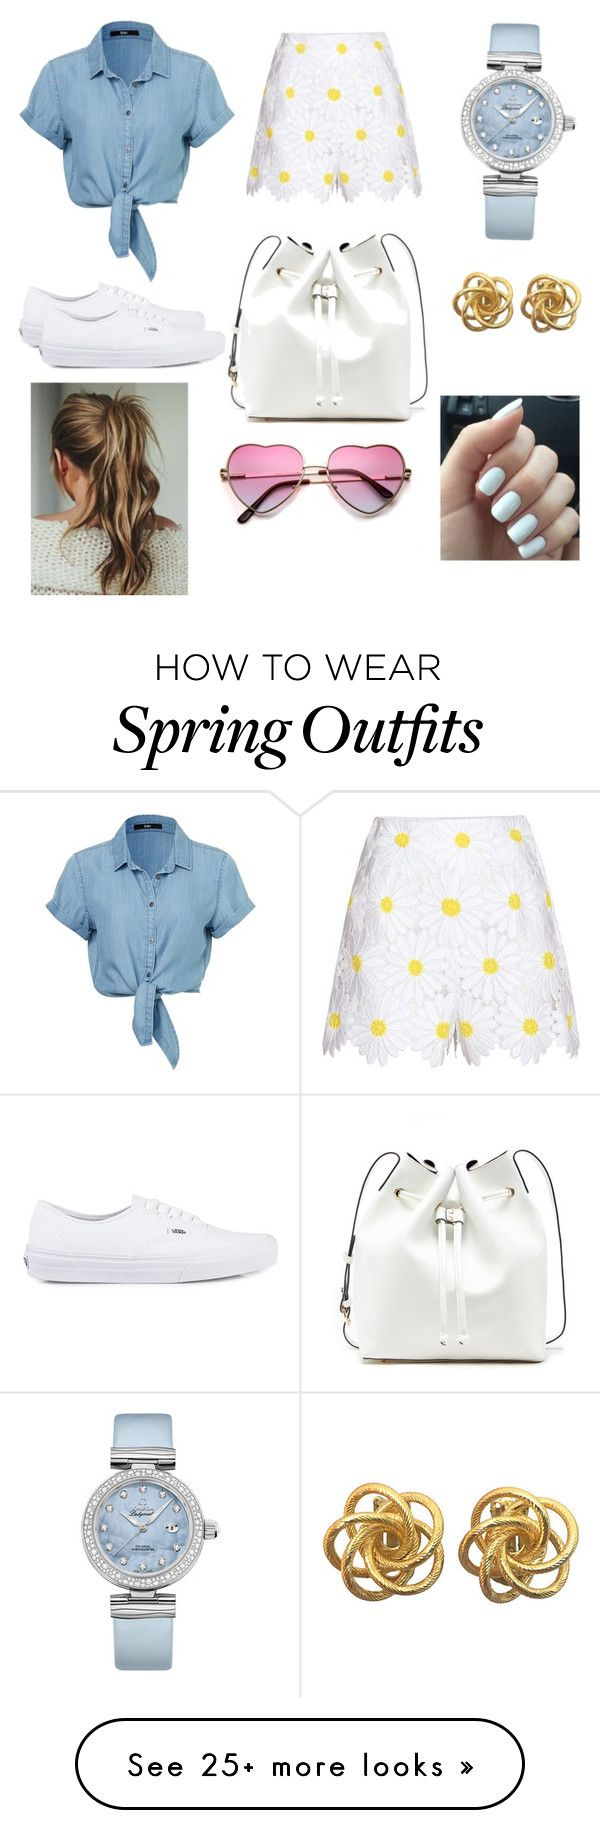 """""""Spring outfit"""" by itsjillianperry on Polyvore featuring Dolce&Gabbana, Vans, Sole Society, OMEGA, women's clothing, women, female, woman, misses and juniors"""